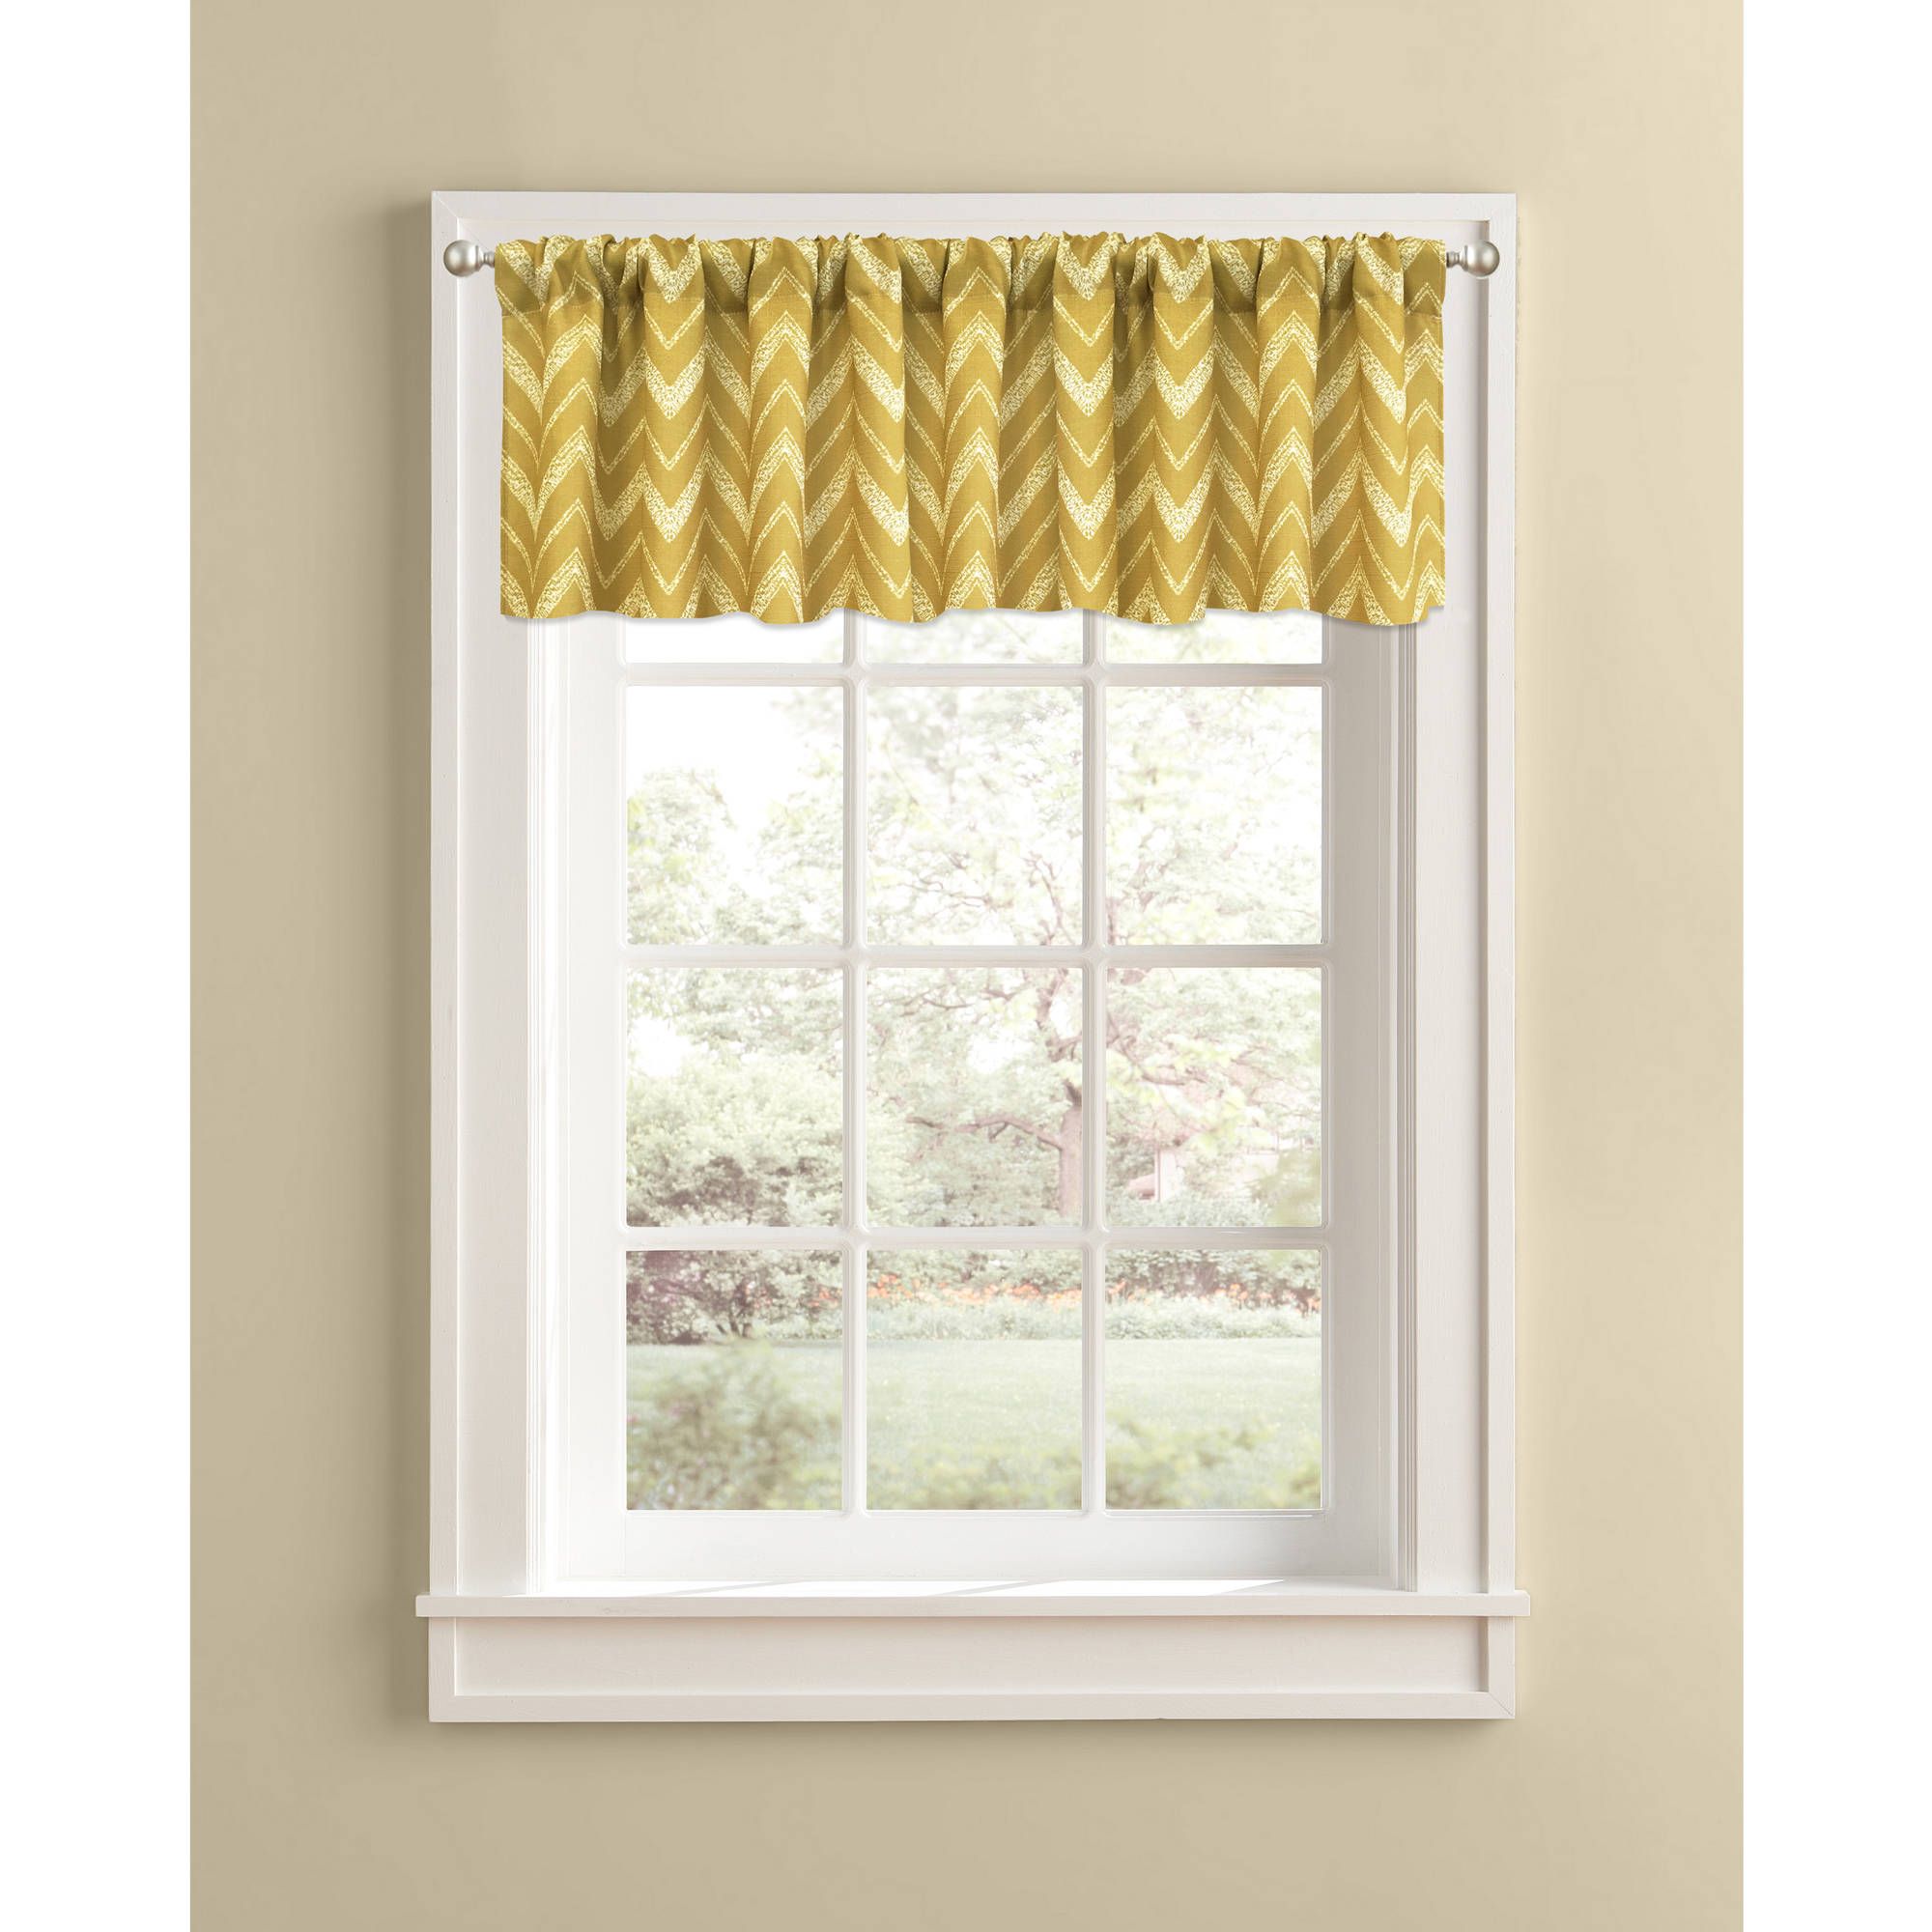 Better Homes and Gardens Gold Chevron Valance, Rod Pocket by Colordrift LLC